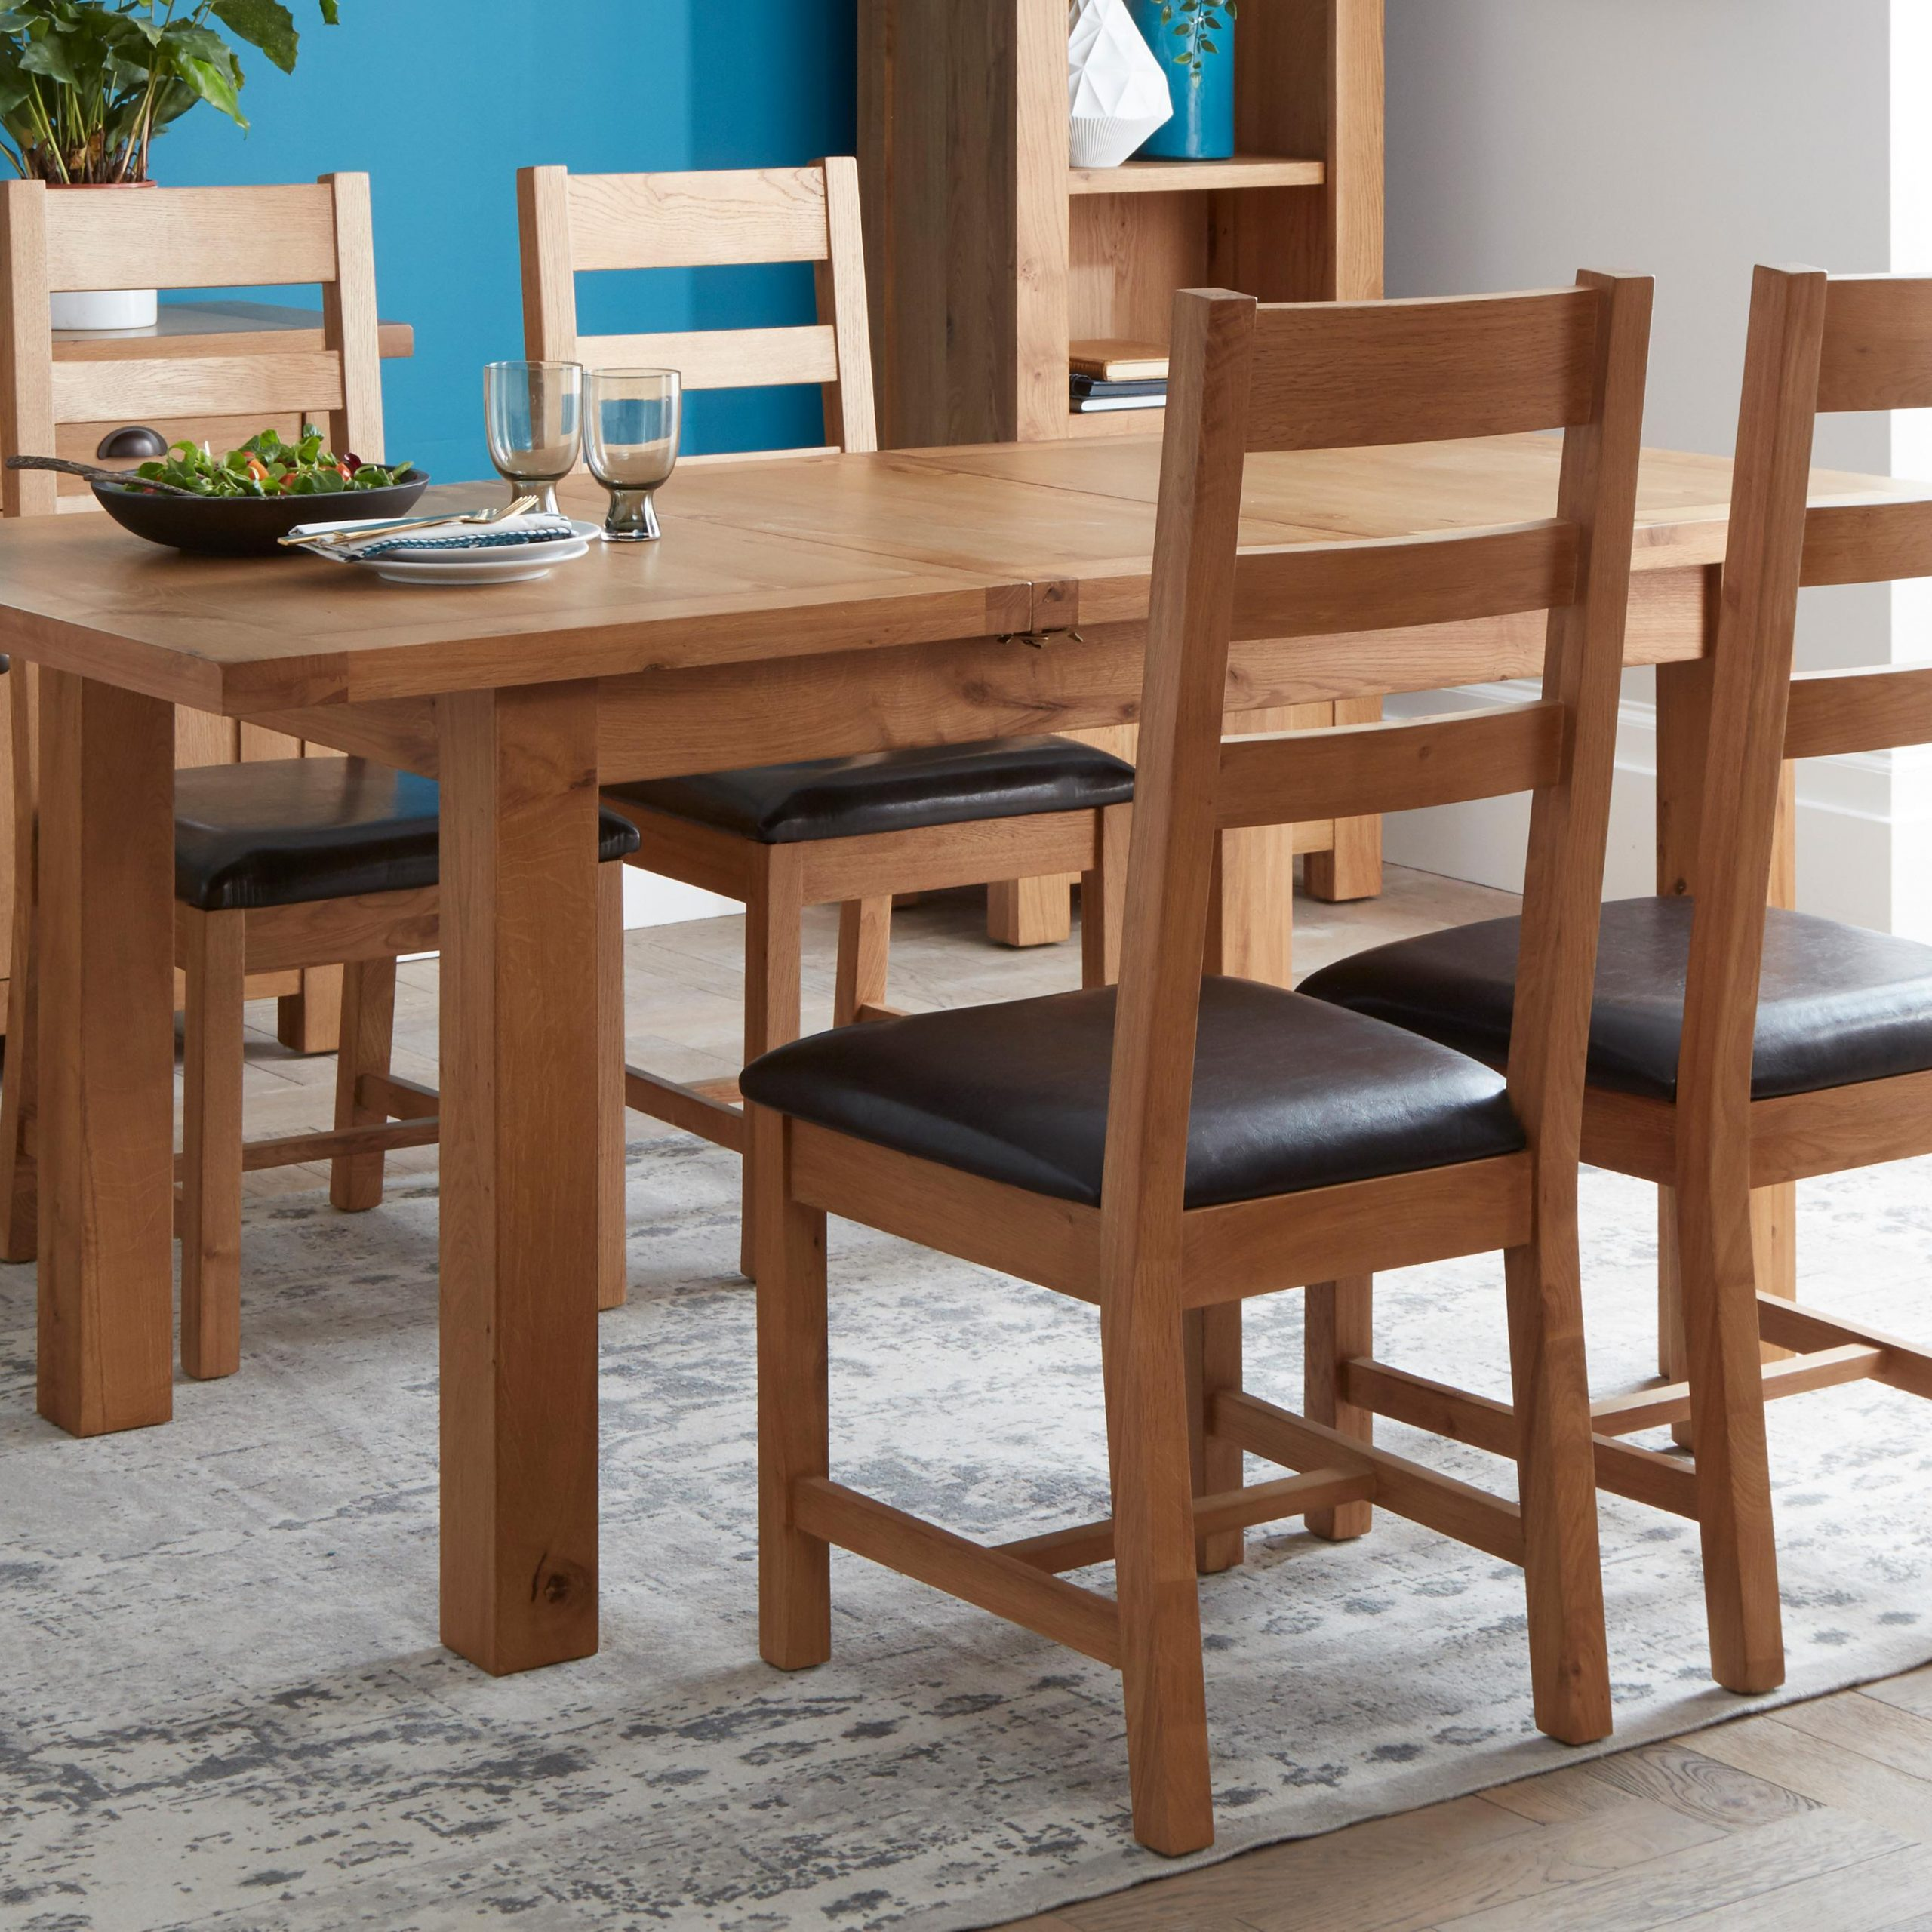 dining tables with chairs for sale